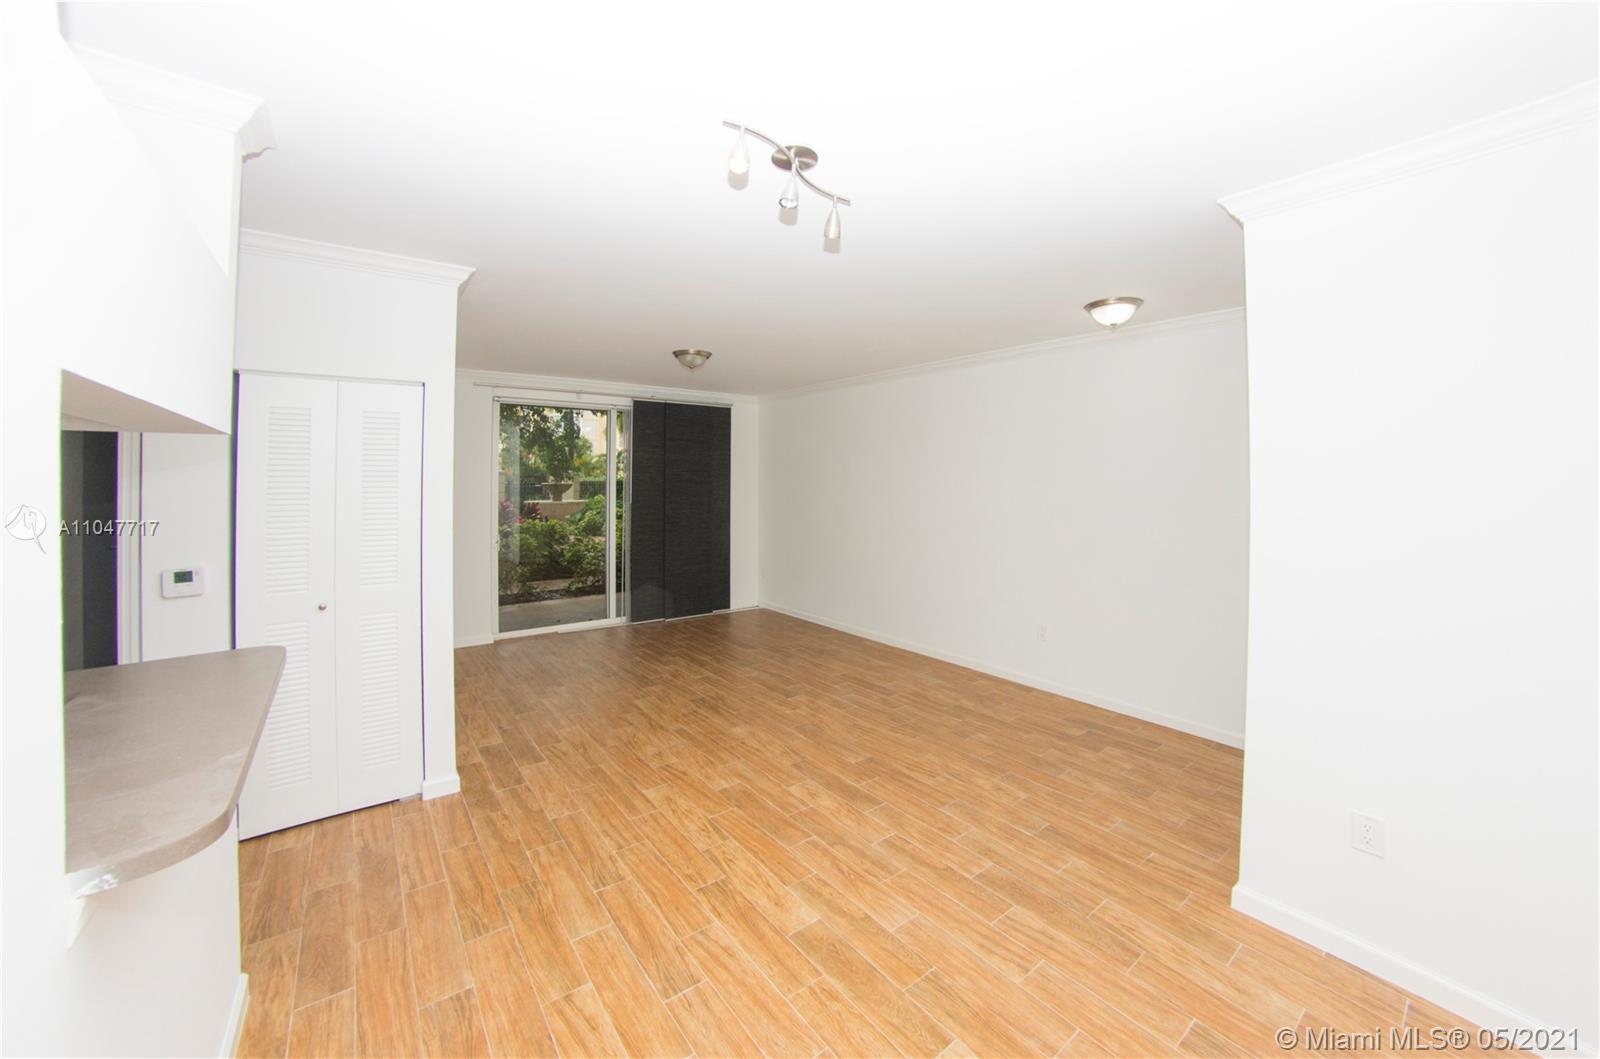 LARGE/SMALL PET-FRIENDLY (Any size) 1/1 GROUND FLOOR CONDO WITH A BEAUTIFUL COURTYARD ENTRANCE, VIEW